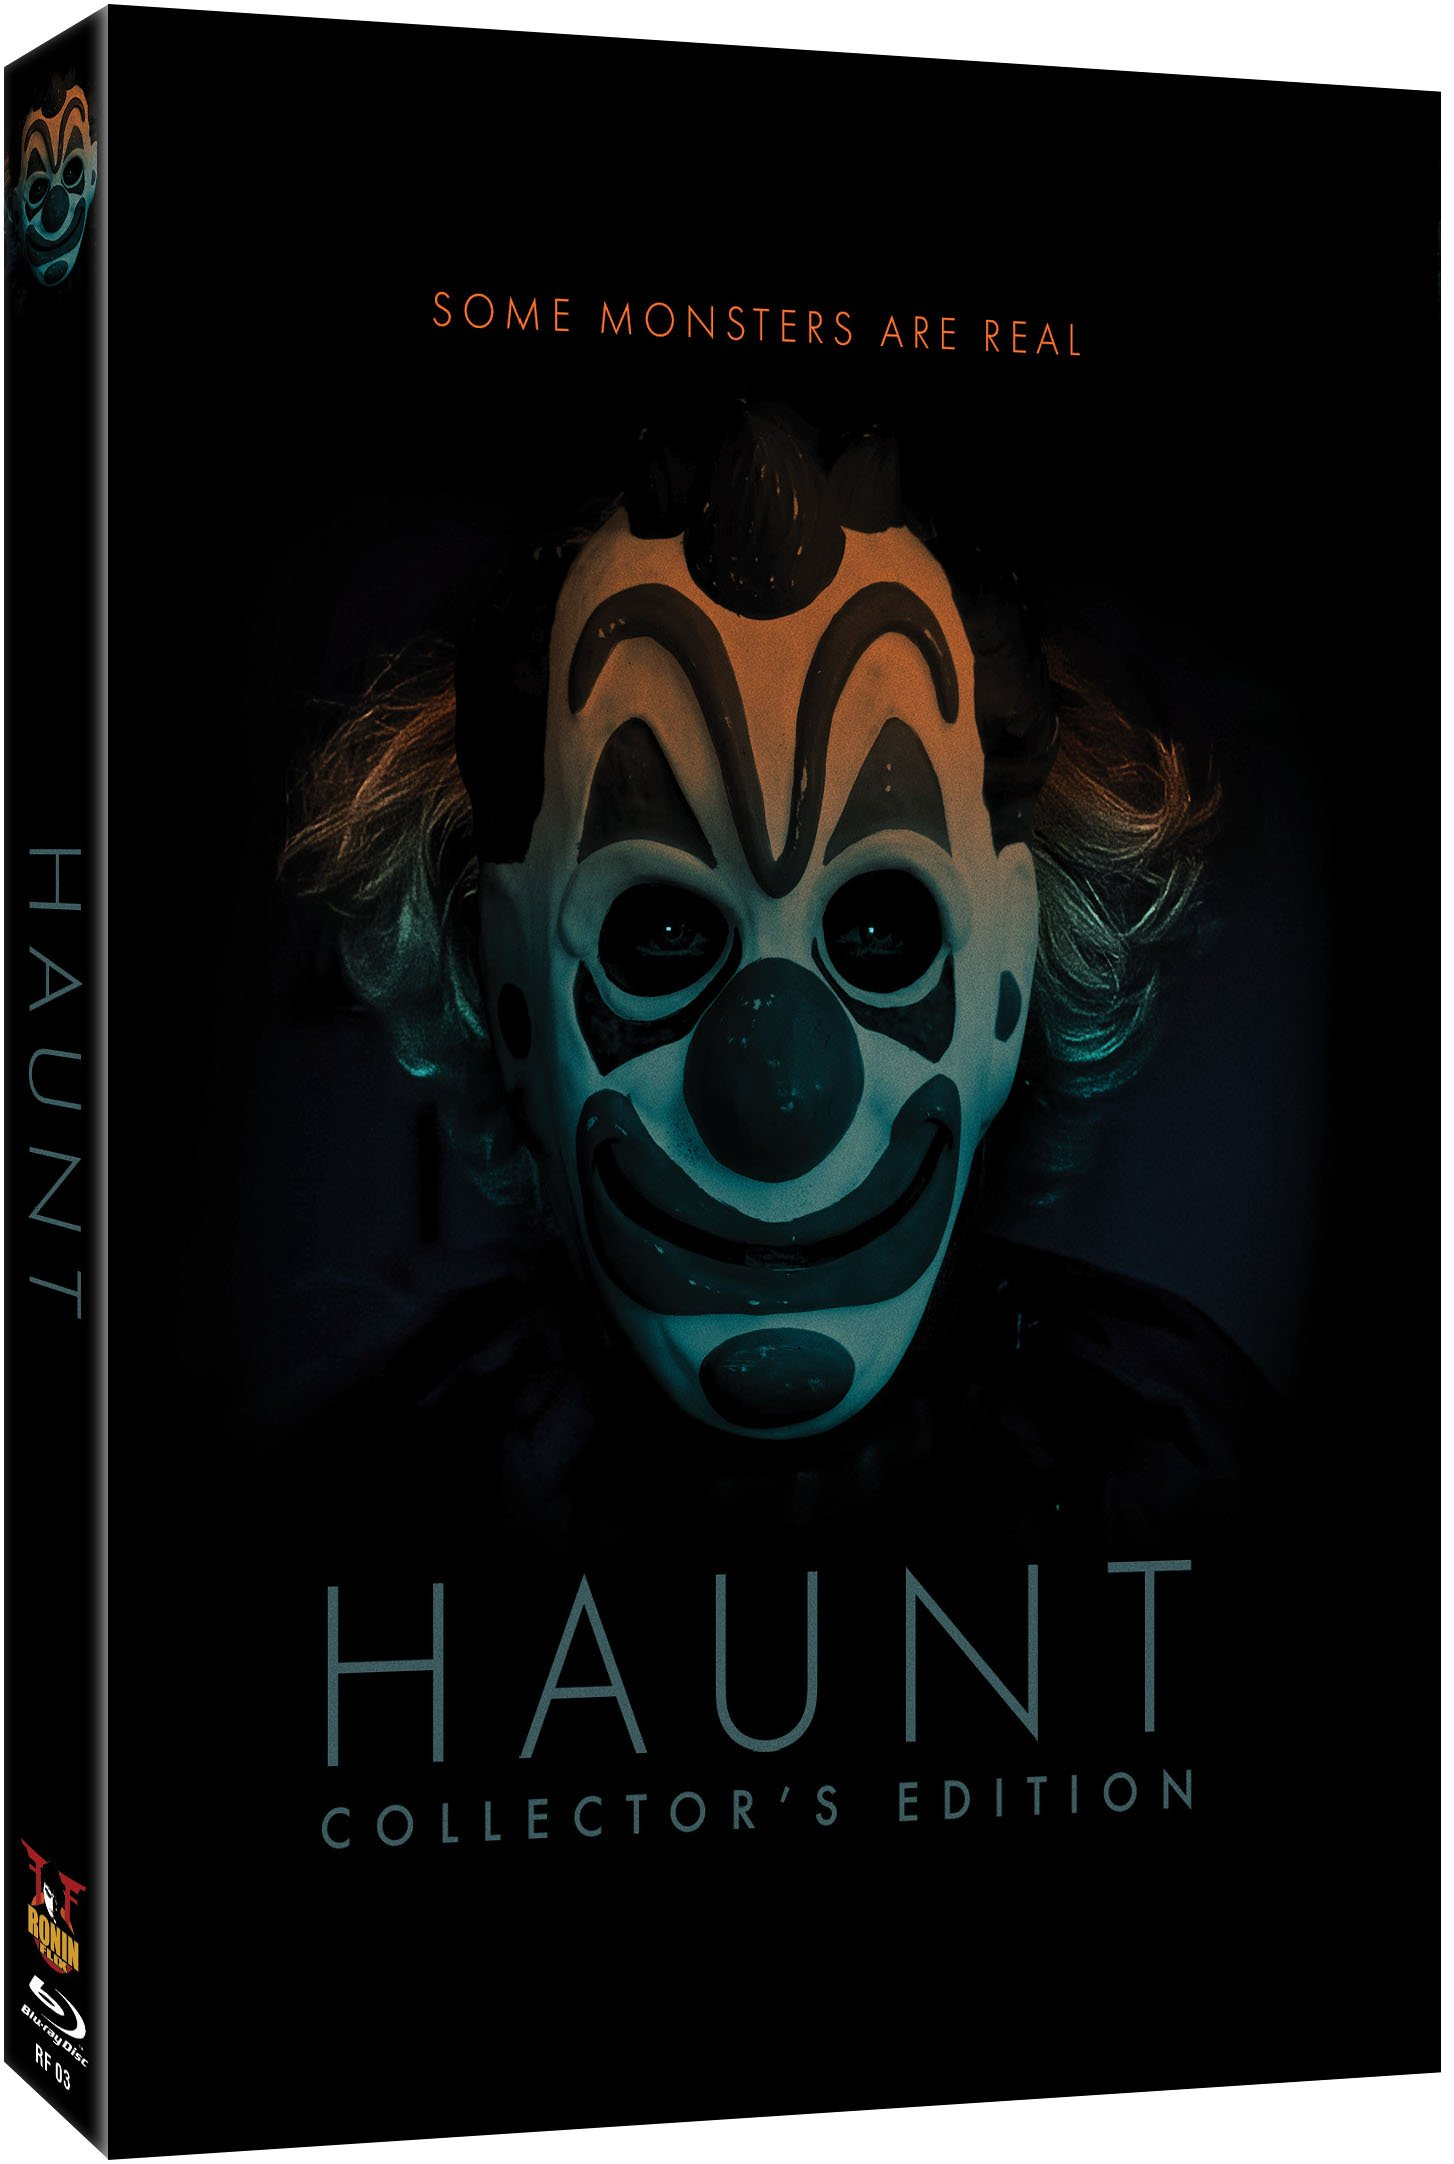 HAUNT NOW AVAILABLE FROM RONIN FLIX